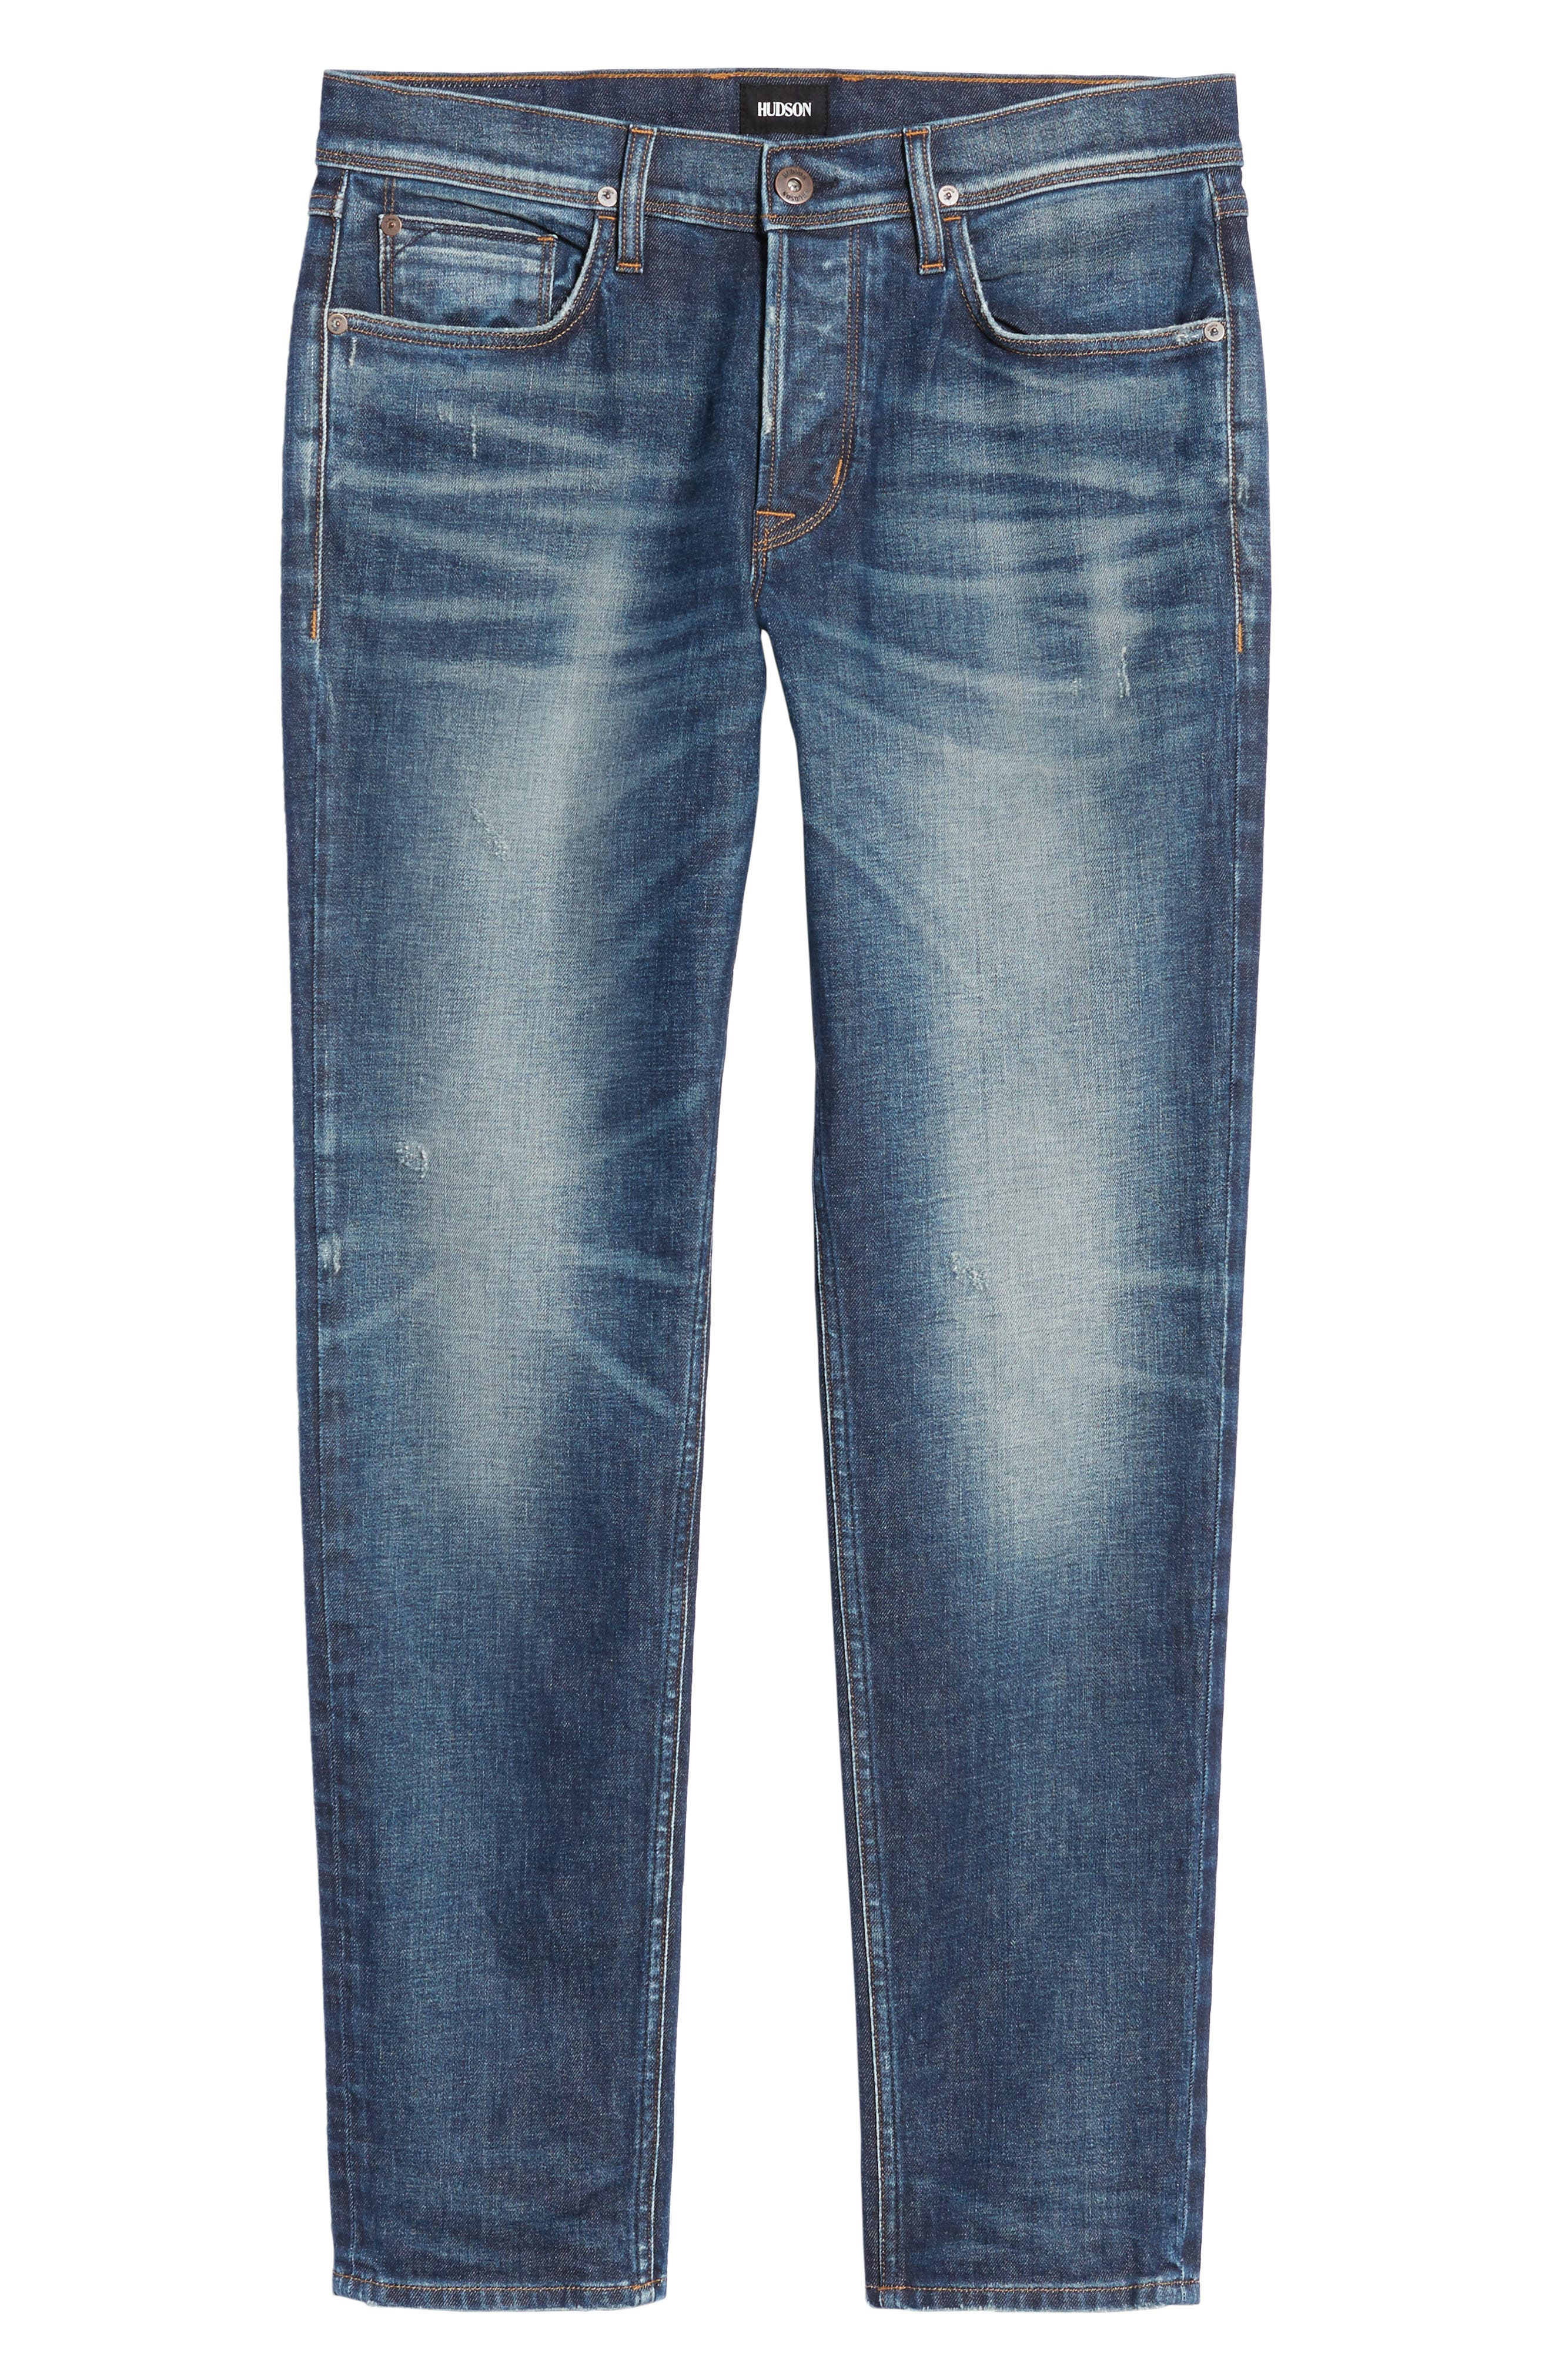 Sartor Slouchy Skinny Fit Jeans,                             Alternate thumbnail 6, color,                             427